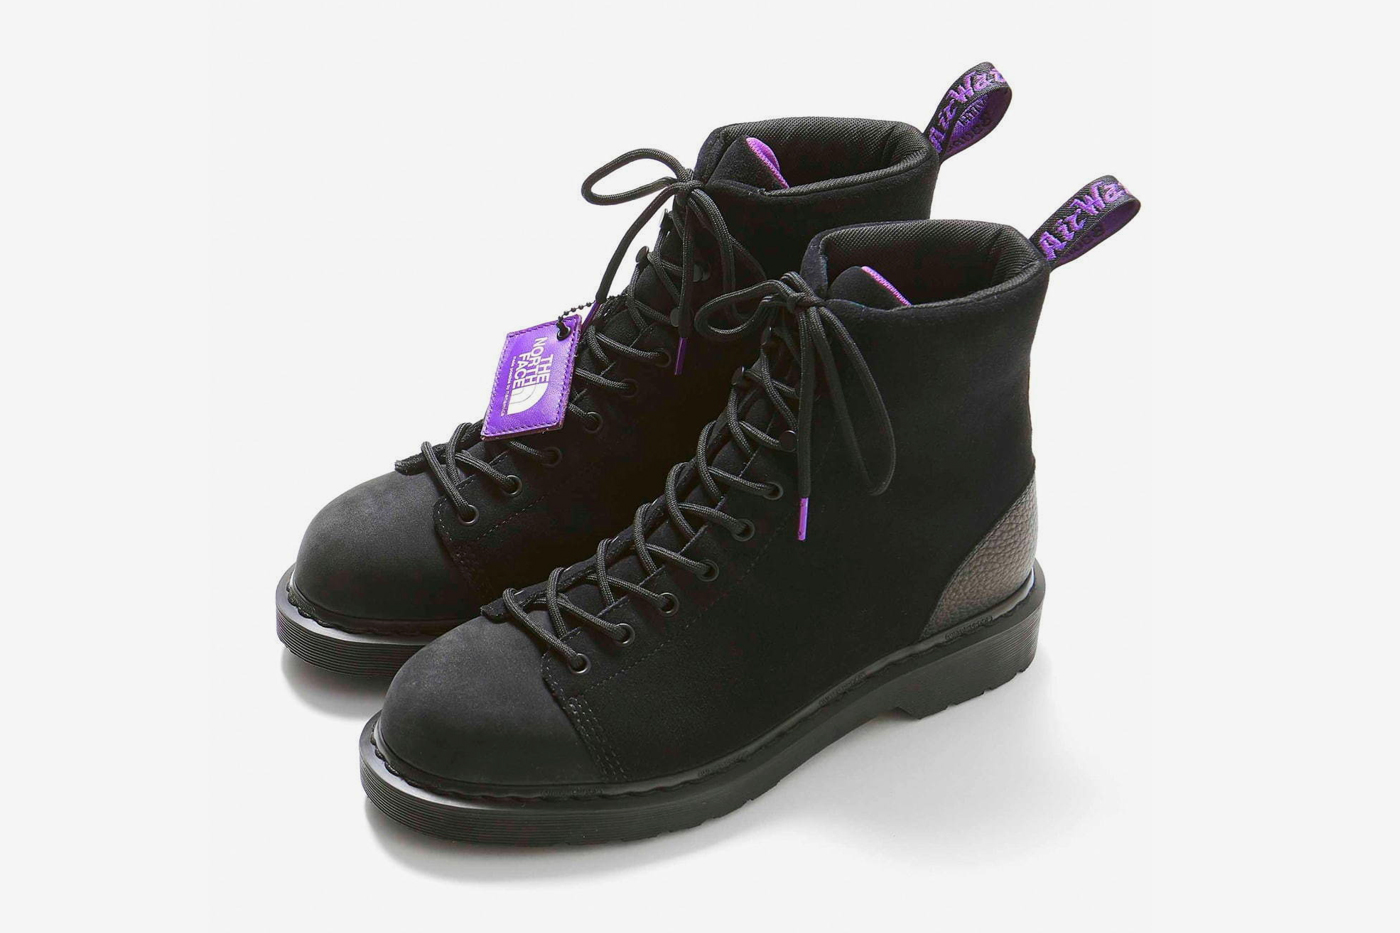 THE NORTH FACE PURPLE LABEL Dr Martens 9 Tie Boots footwear shoes outdoor heritage leather japanese hiking crafted high top wellington airwair heel tab